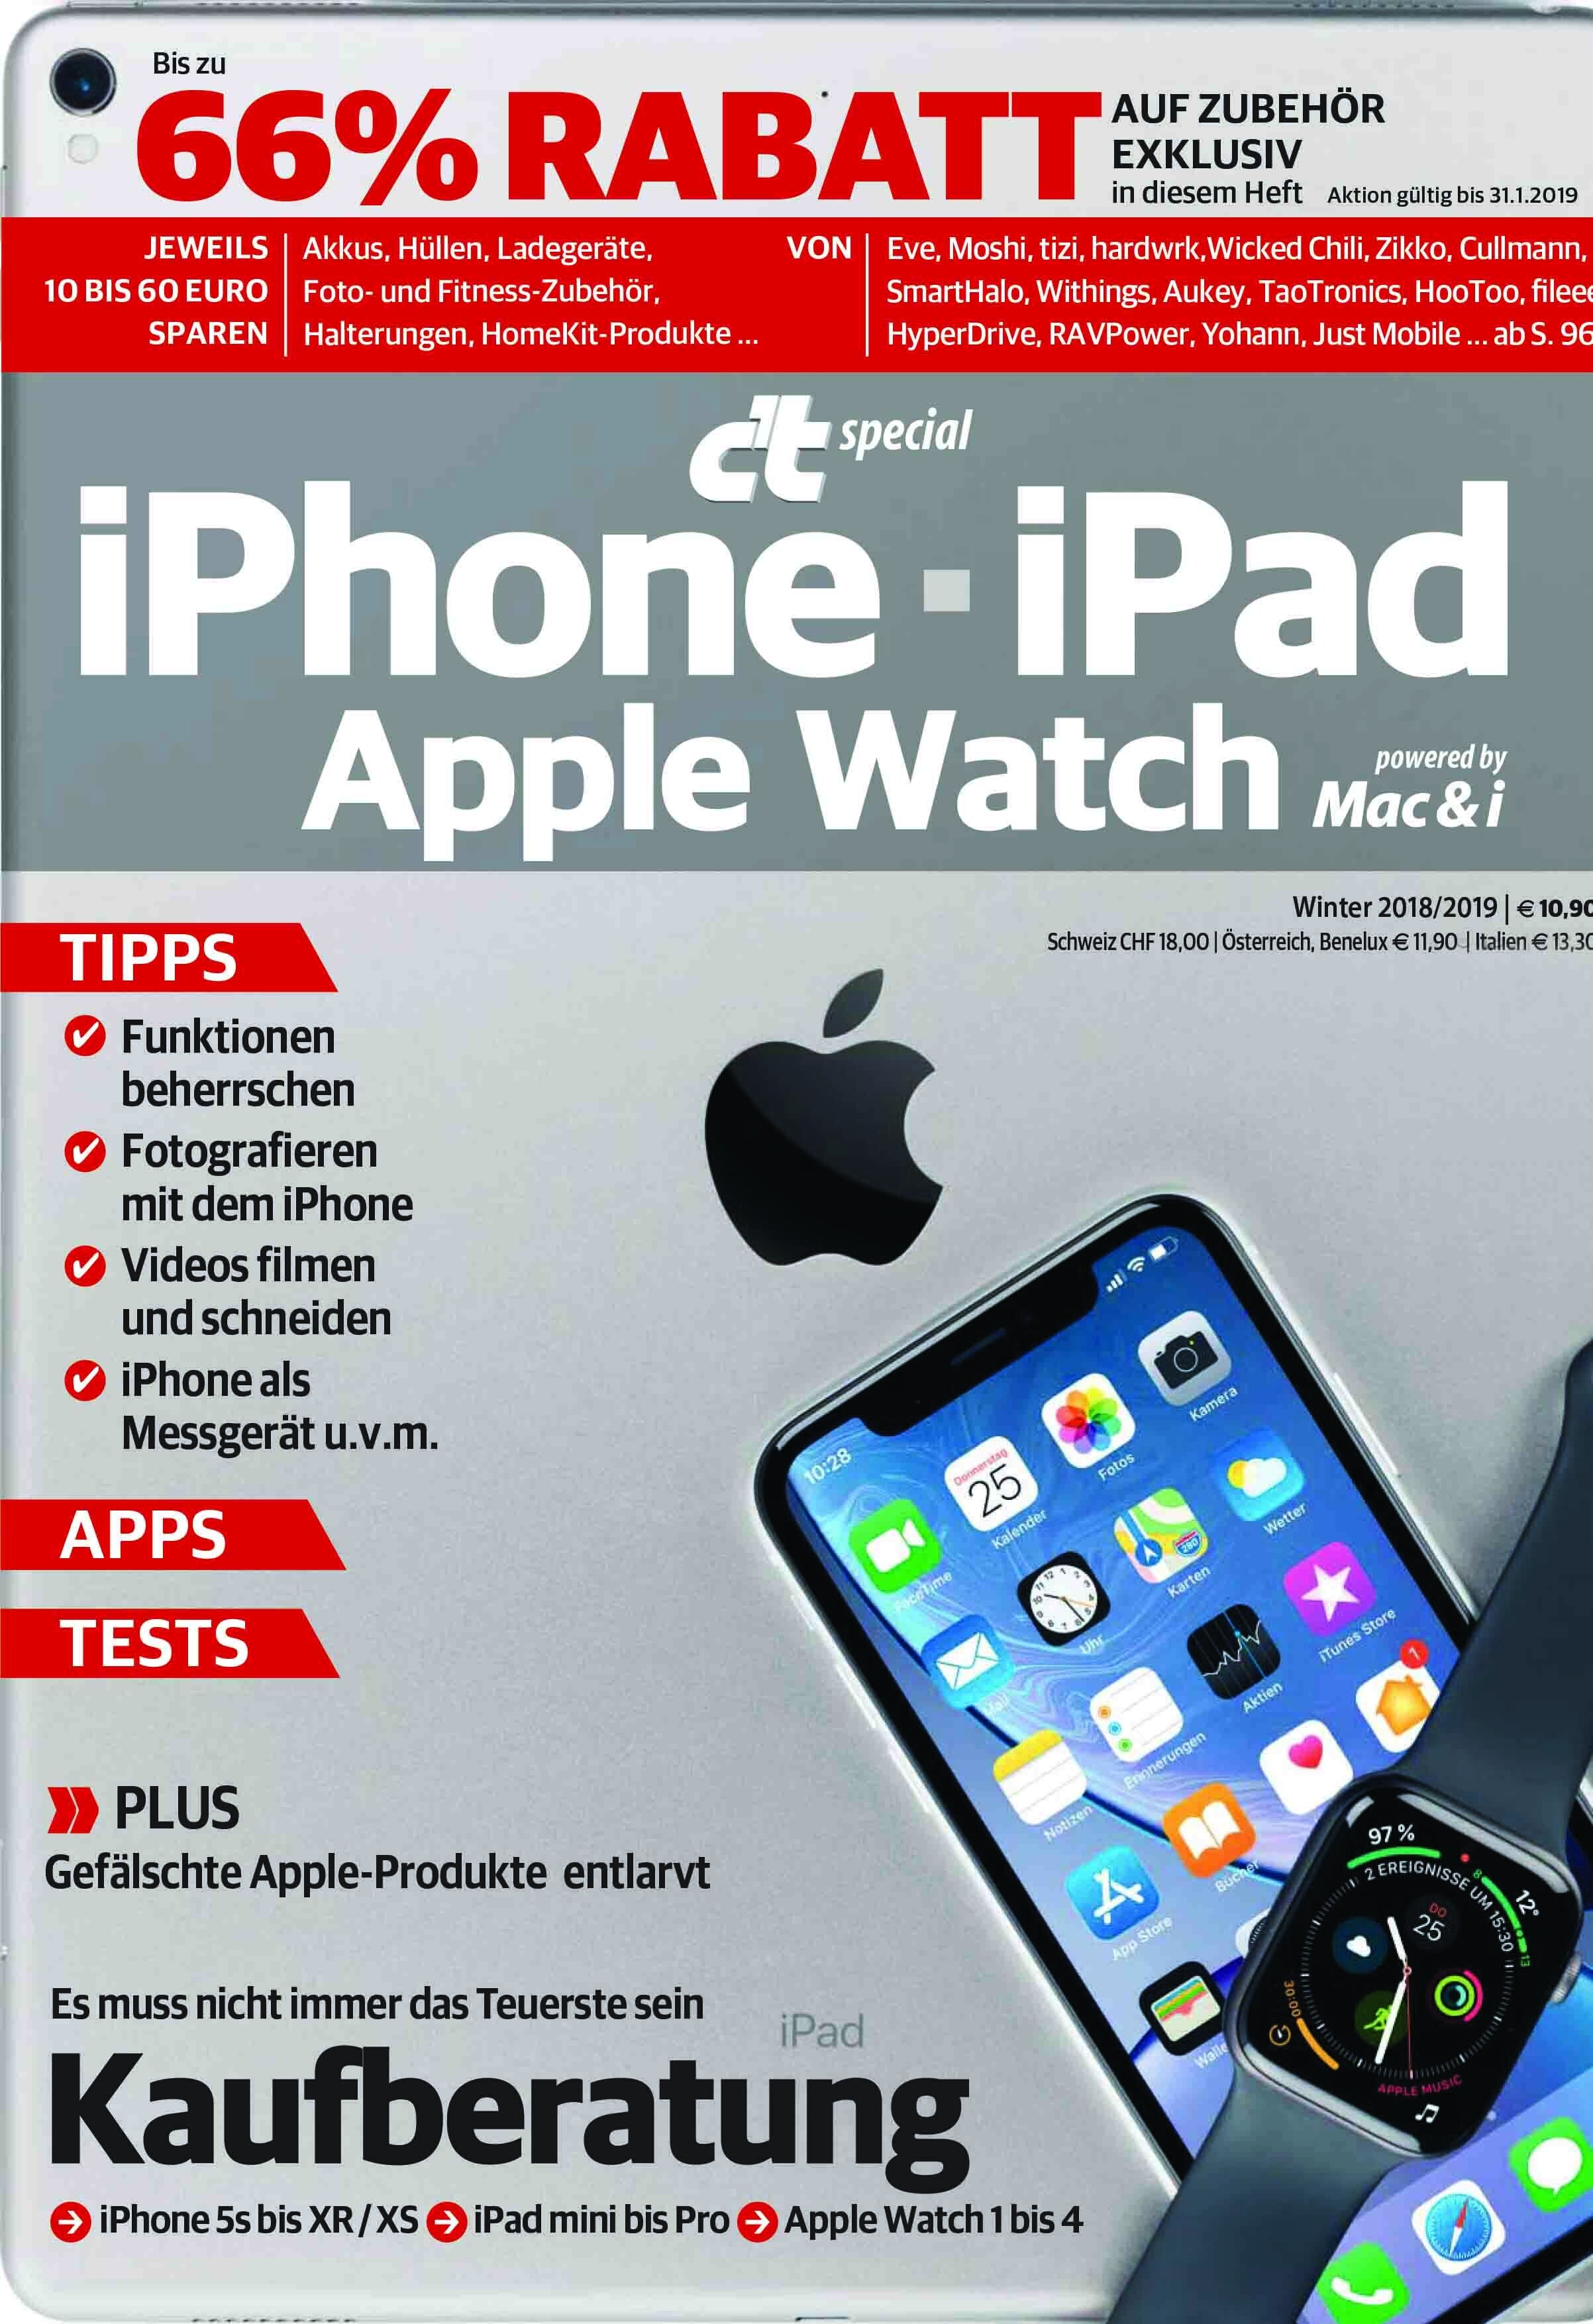 c't special iPhone - iPad - Apple Watch